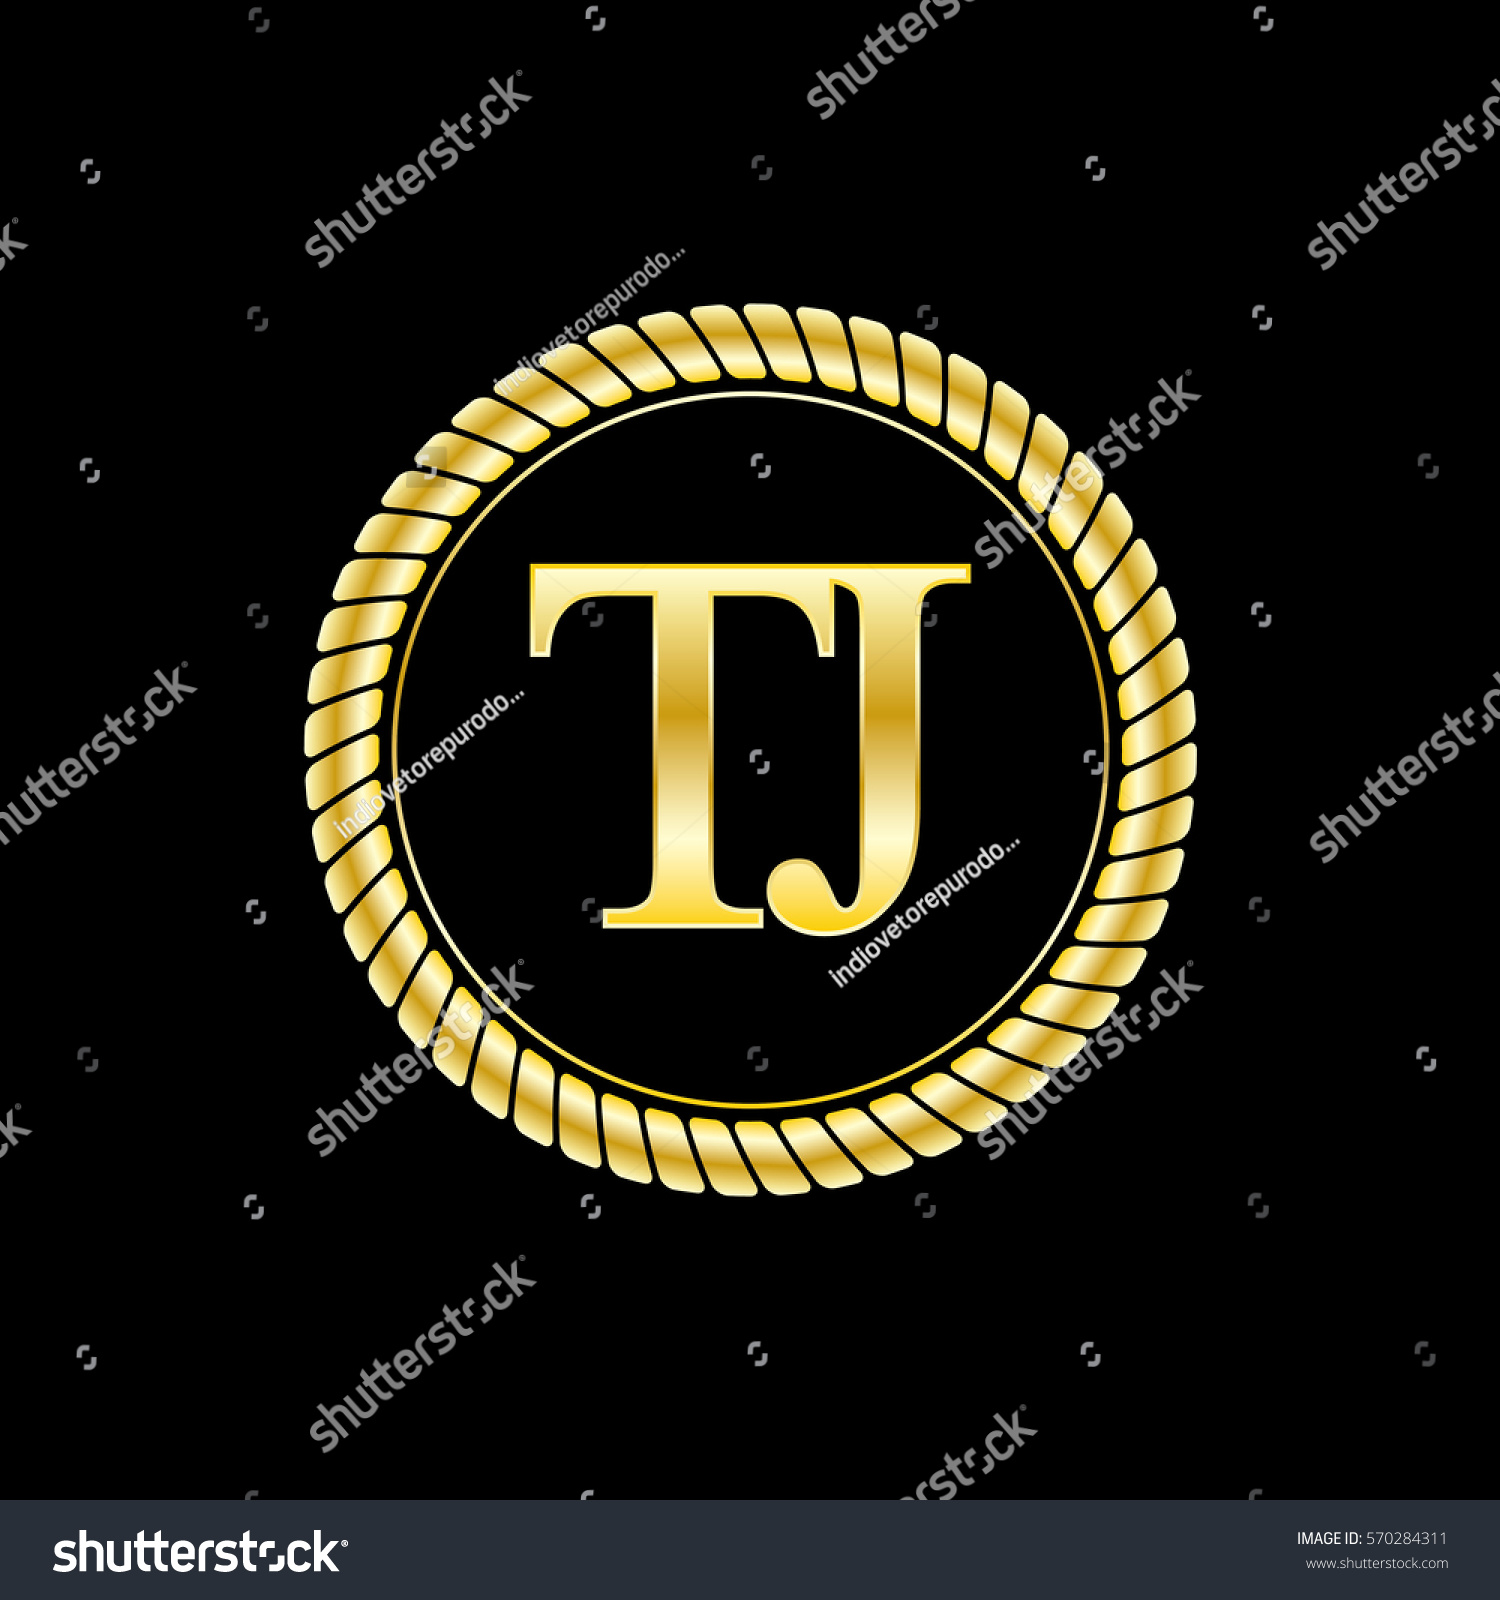 T And J Designs.Initials T J Logo Luxurious Golden Stock Vector Royalty